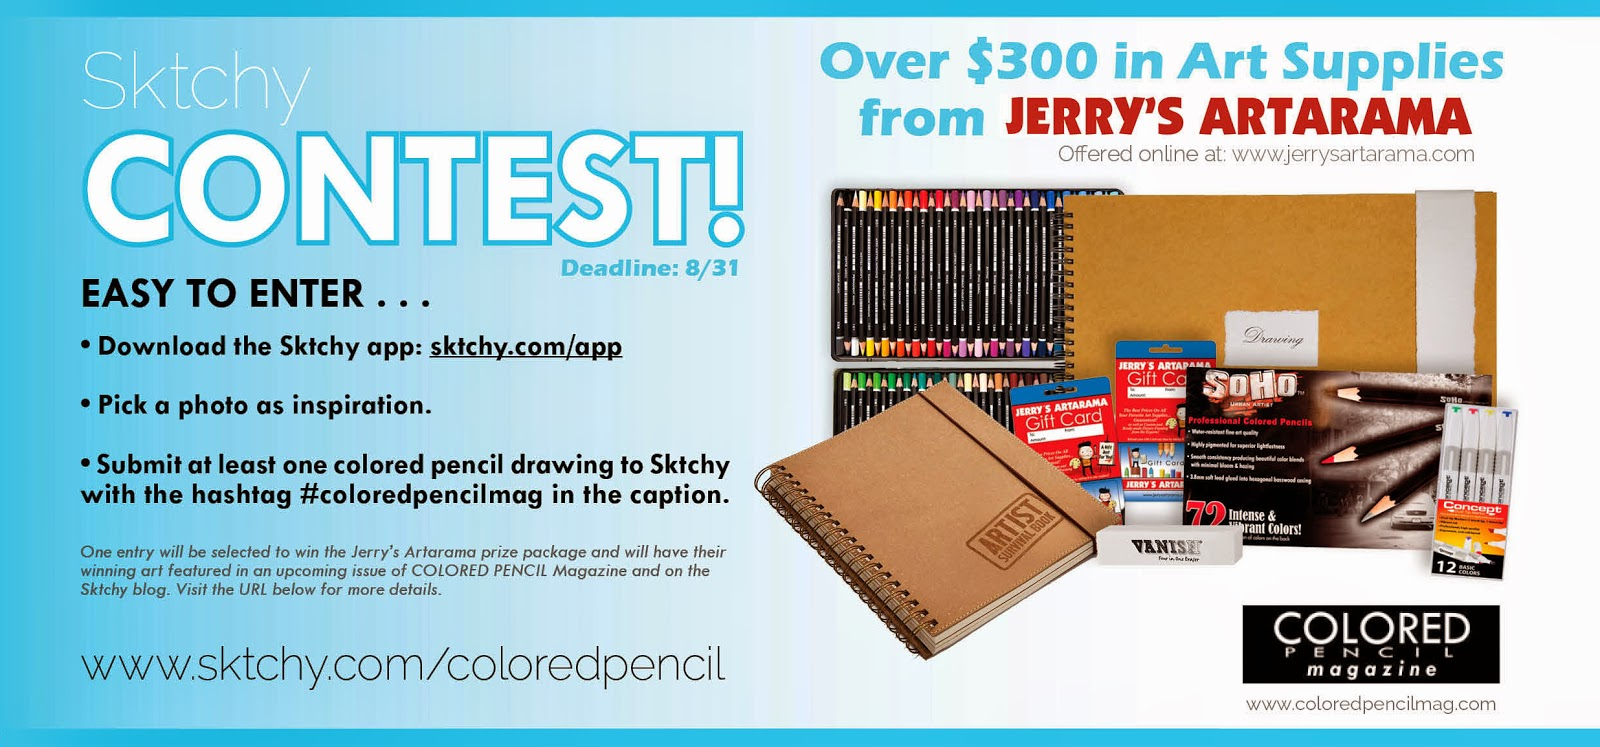 http://blog.sktchy.com/post/93107399523/contest-sharpen-your-colored-pencils